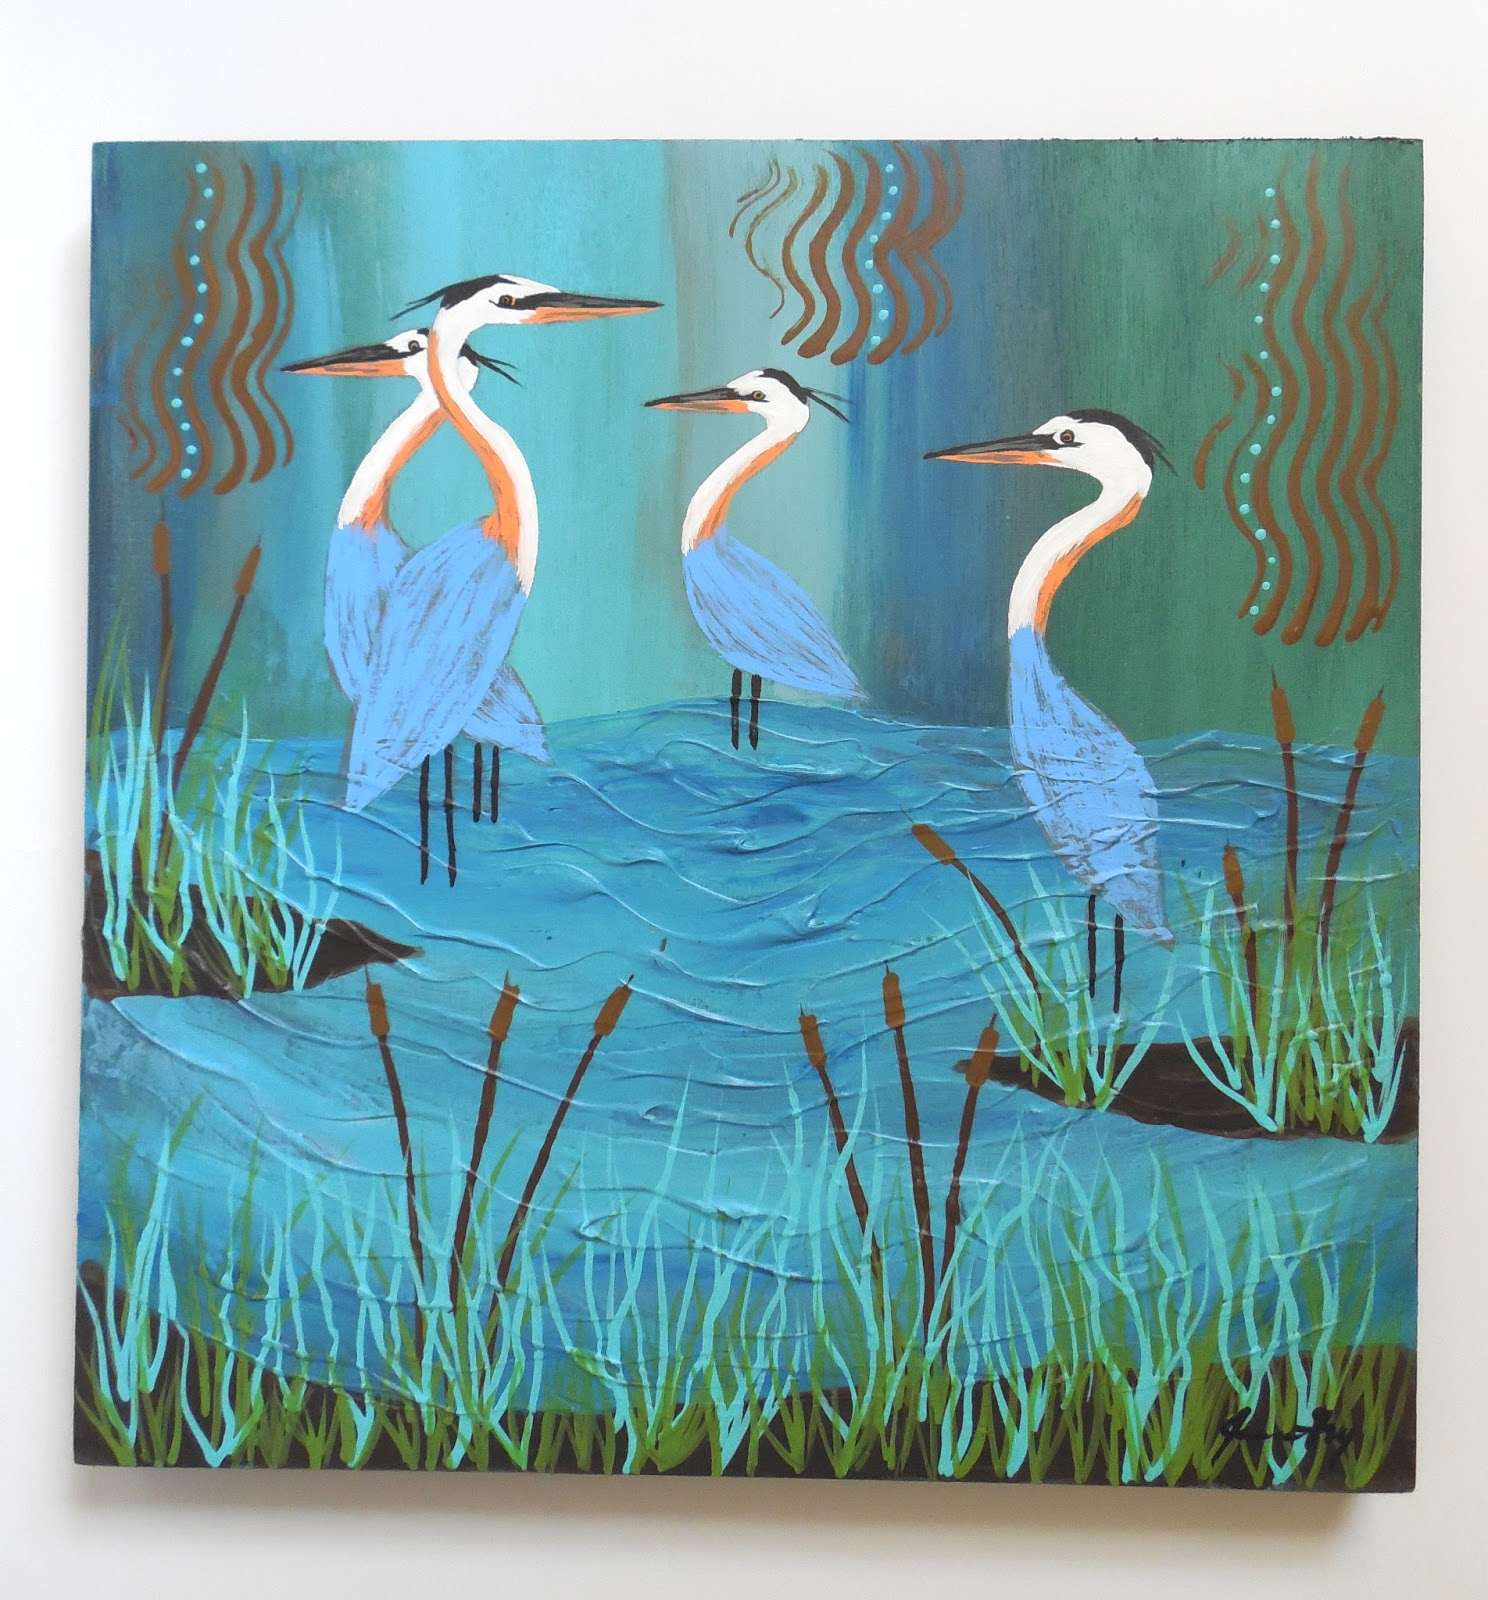 Conscious Art Studios The Symbolism And Philosophy Of The Heron